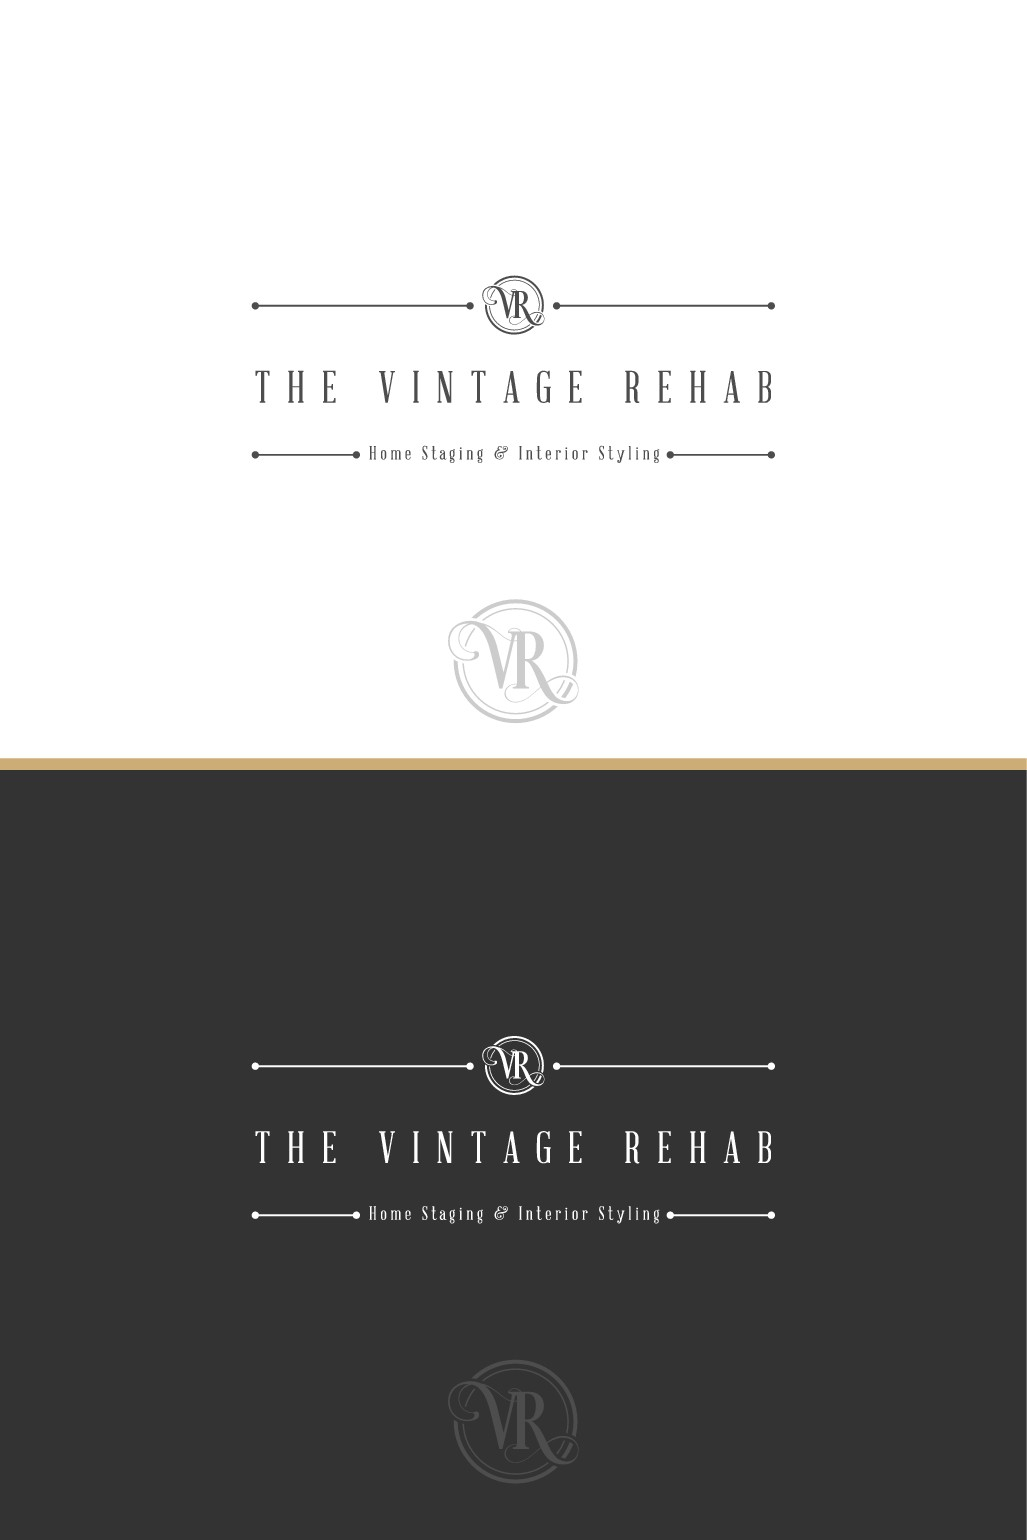 Create a logo for a home staging business and future decoration brand